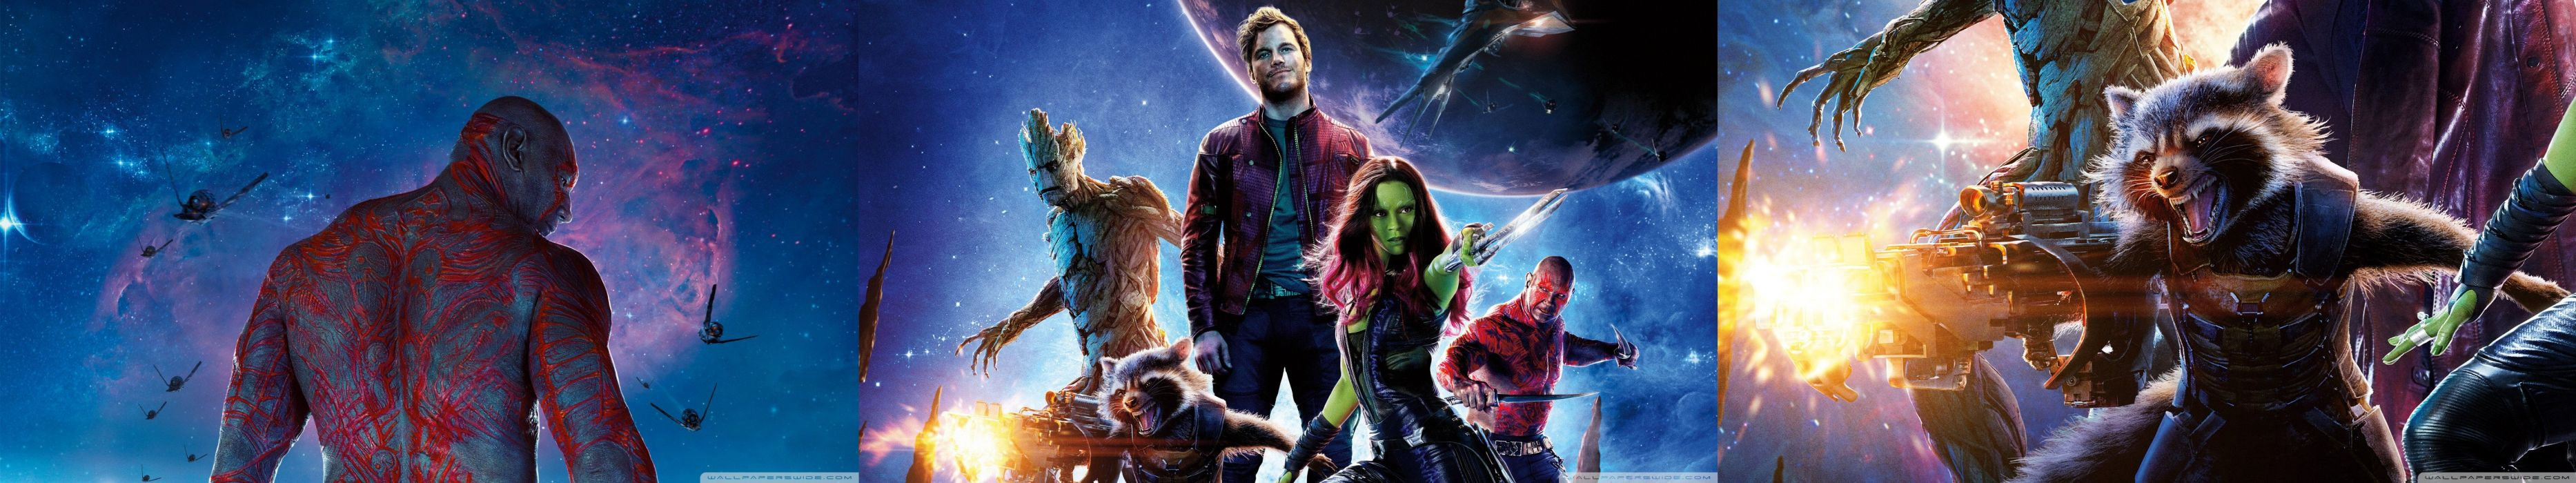 "triple monitor multiple screen multi gardiens de la galaxie Guardians of the Galaxy Christopher Michael ""Chris"" Pratt Star Lord Zoe Saldana Gamora David Michael Bautista Batisda Drax le destructeur destroyer Bradley Cooper Rocket Raccoon Mark Vi wallpaper"